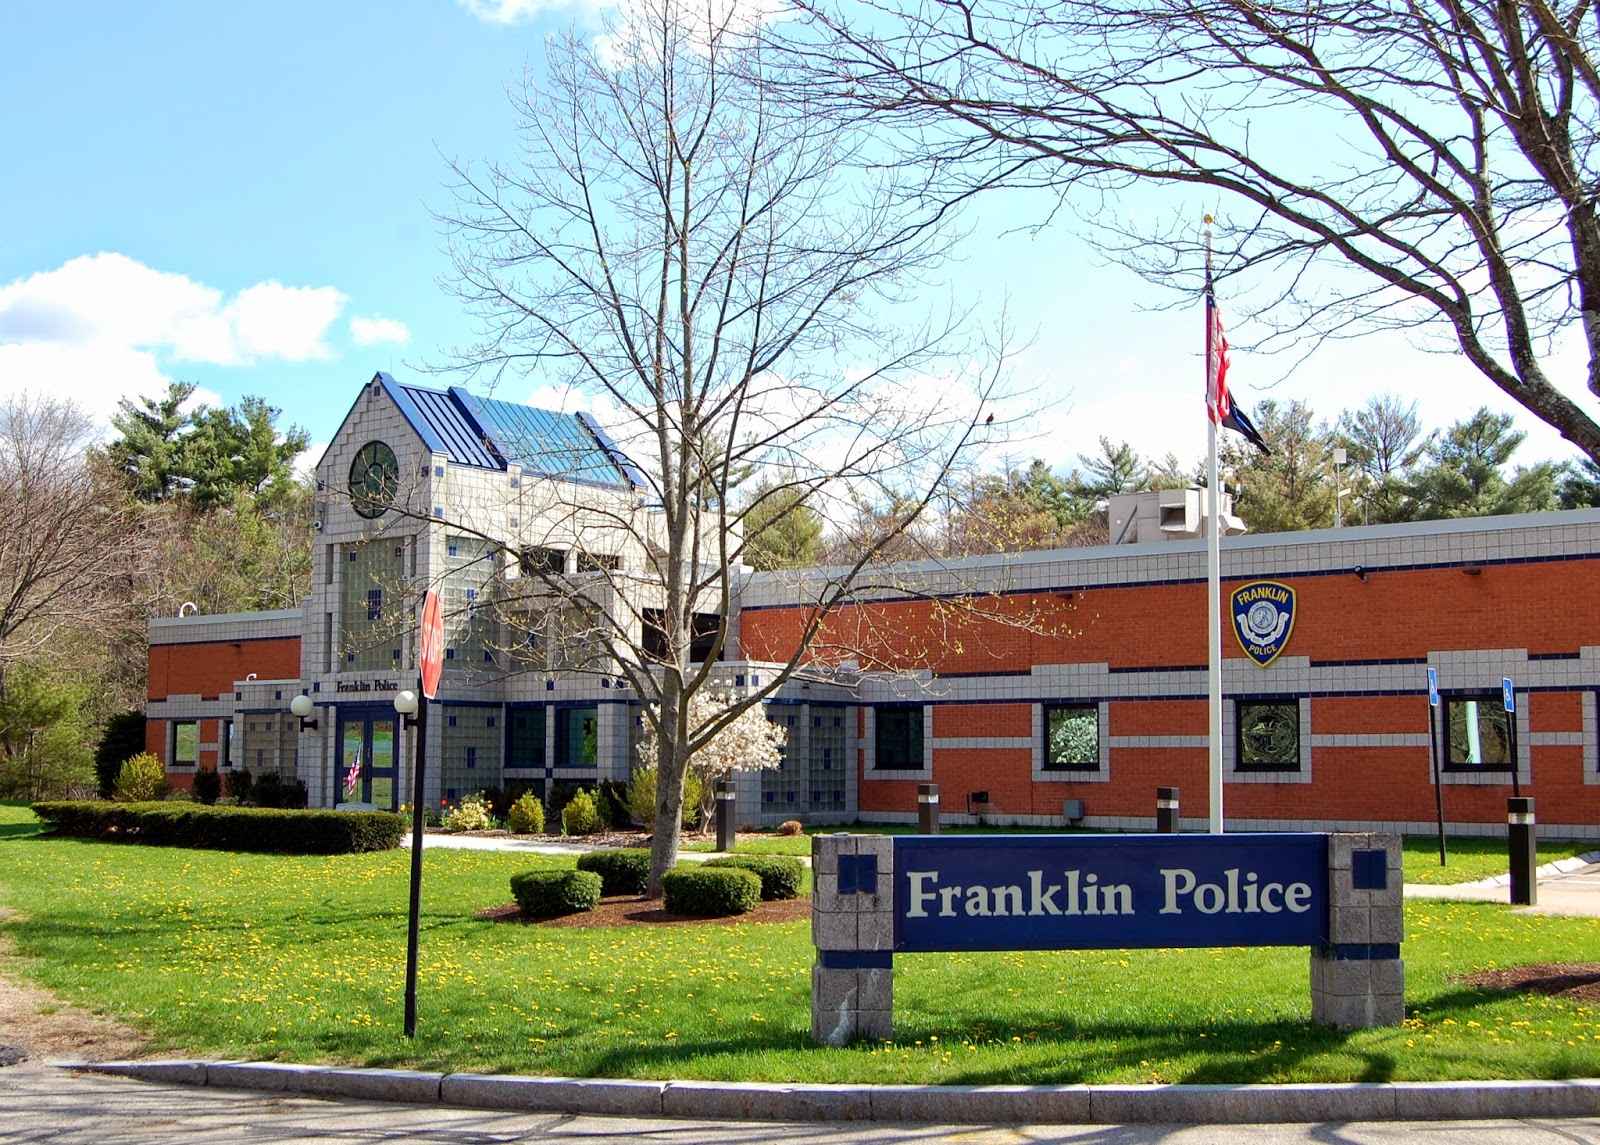 Franklin Police station on Panther Way